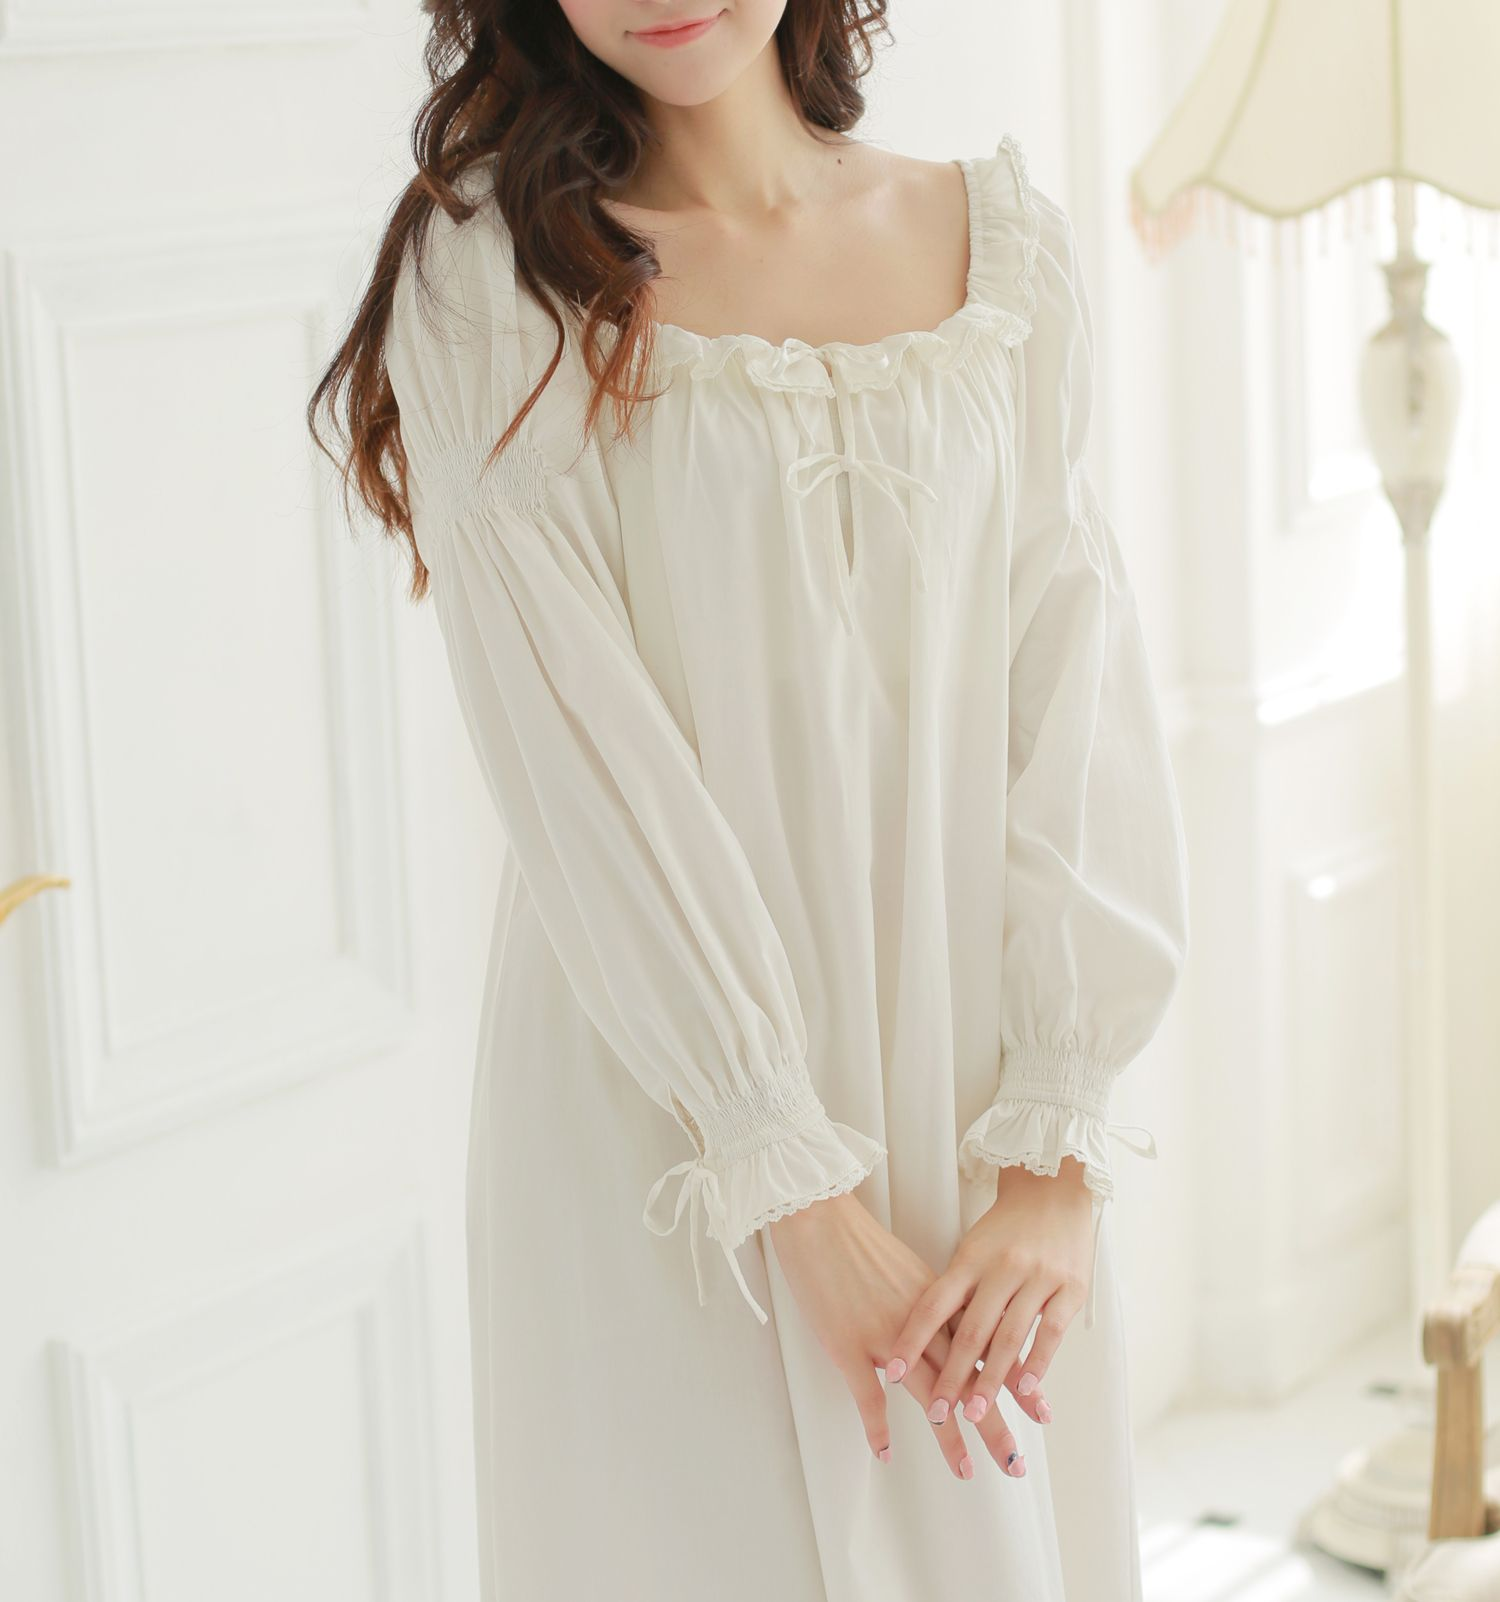 Cheap Nightgowns Sleepshirts On Sale At Bargain Price Buy Quality Nightgown Silk Nightgown Red Nightgown Cotton Night Dress Night Gown Cotton Night Dress